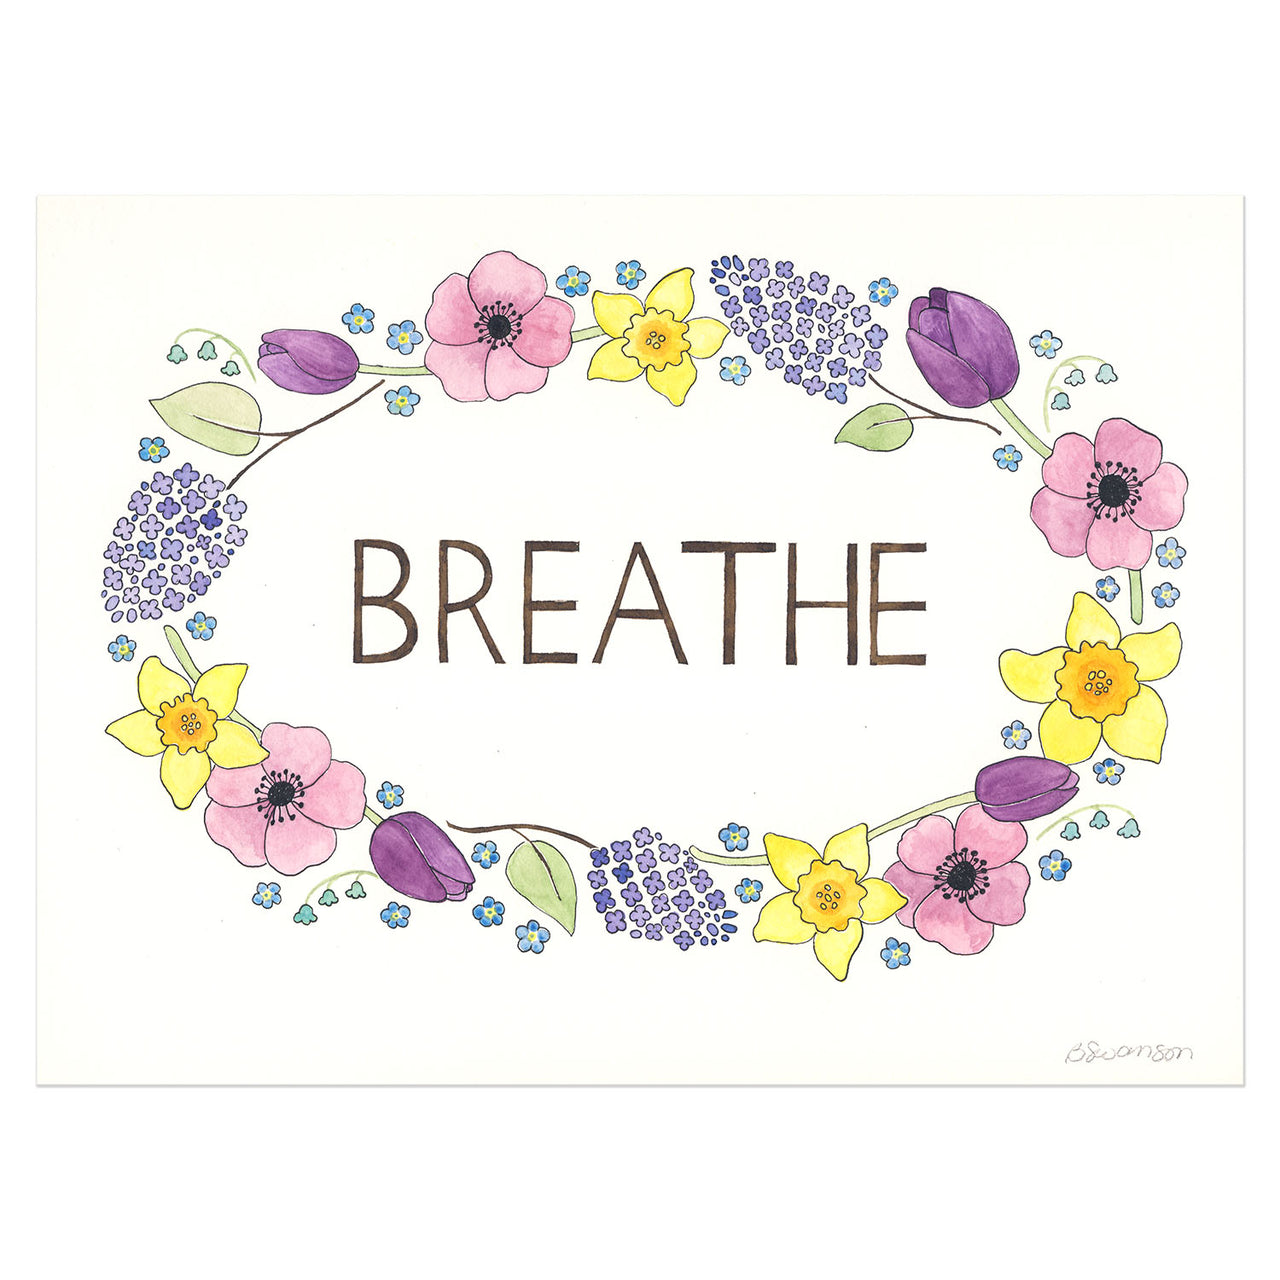 Breathe Original Watercolor Painting